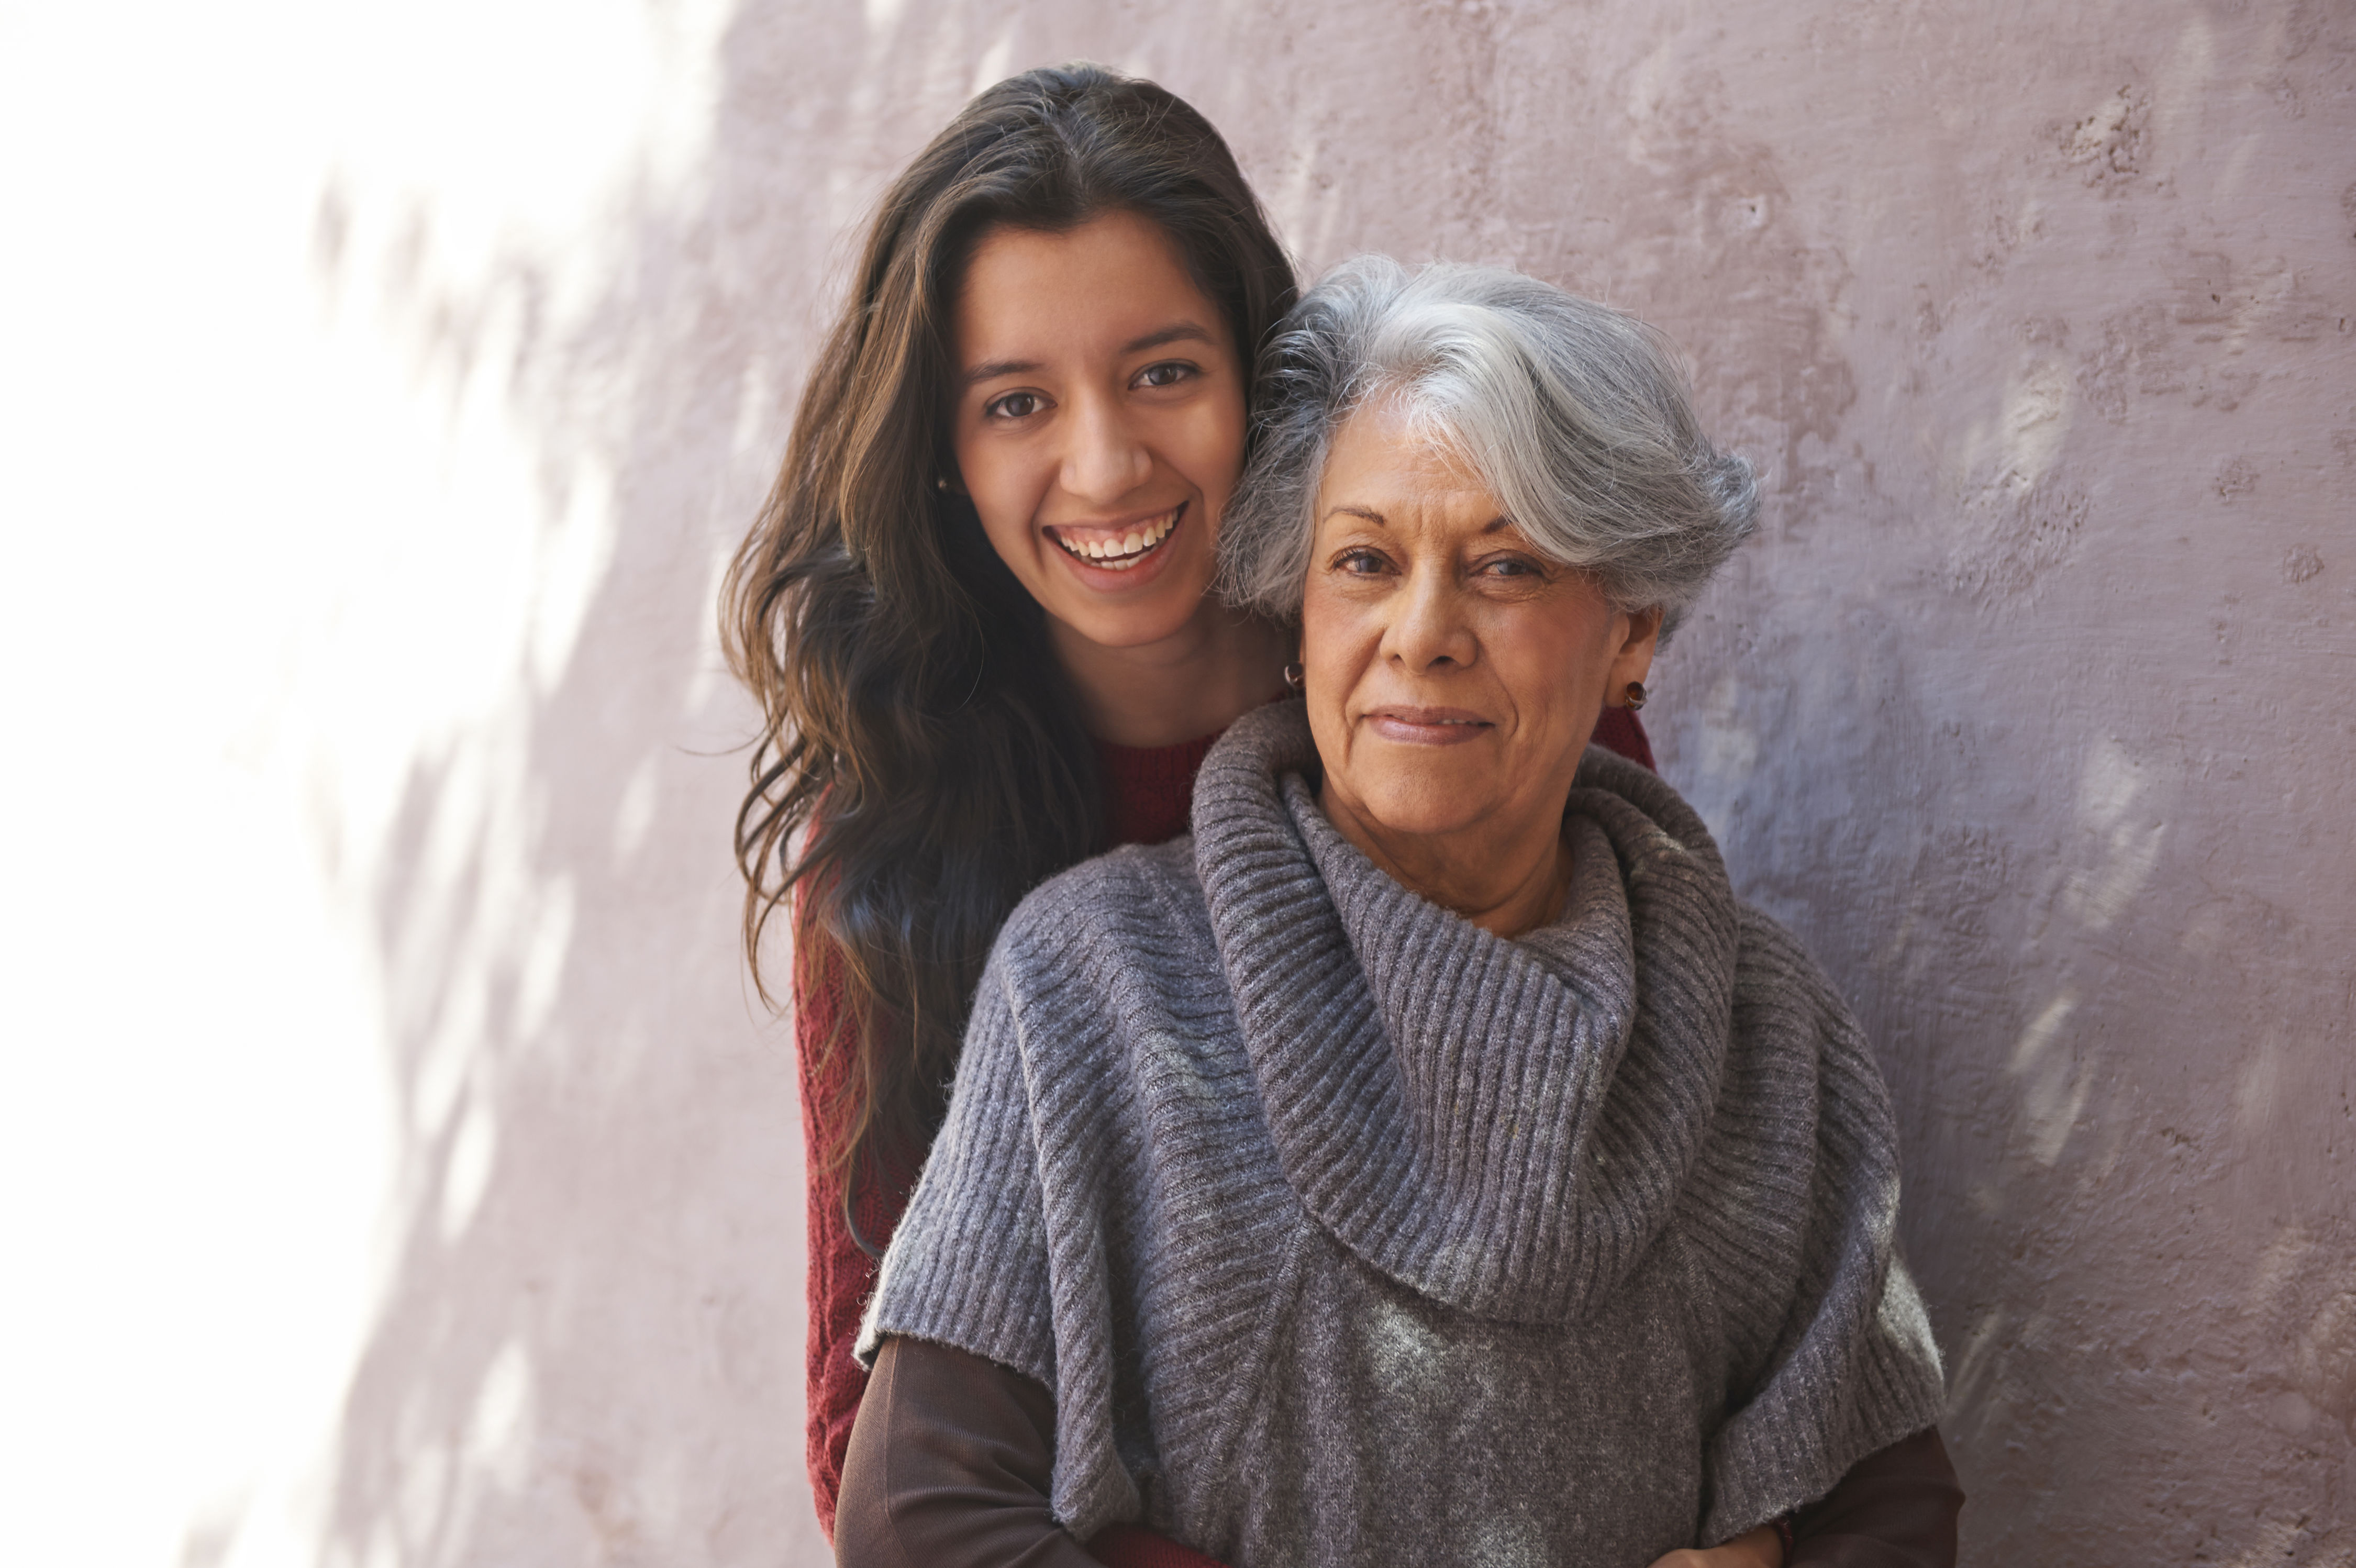 7 Things Everyone Should Know About Their Grandparents